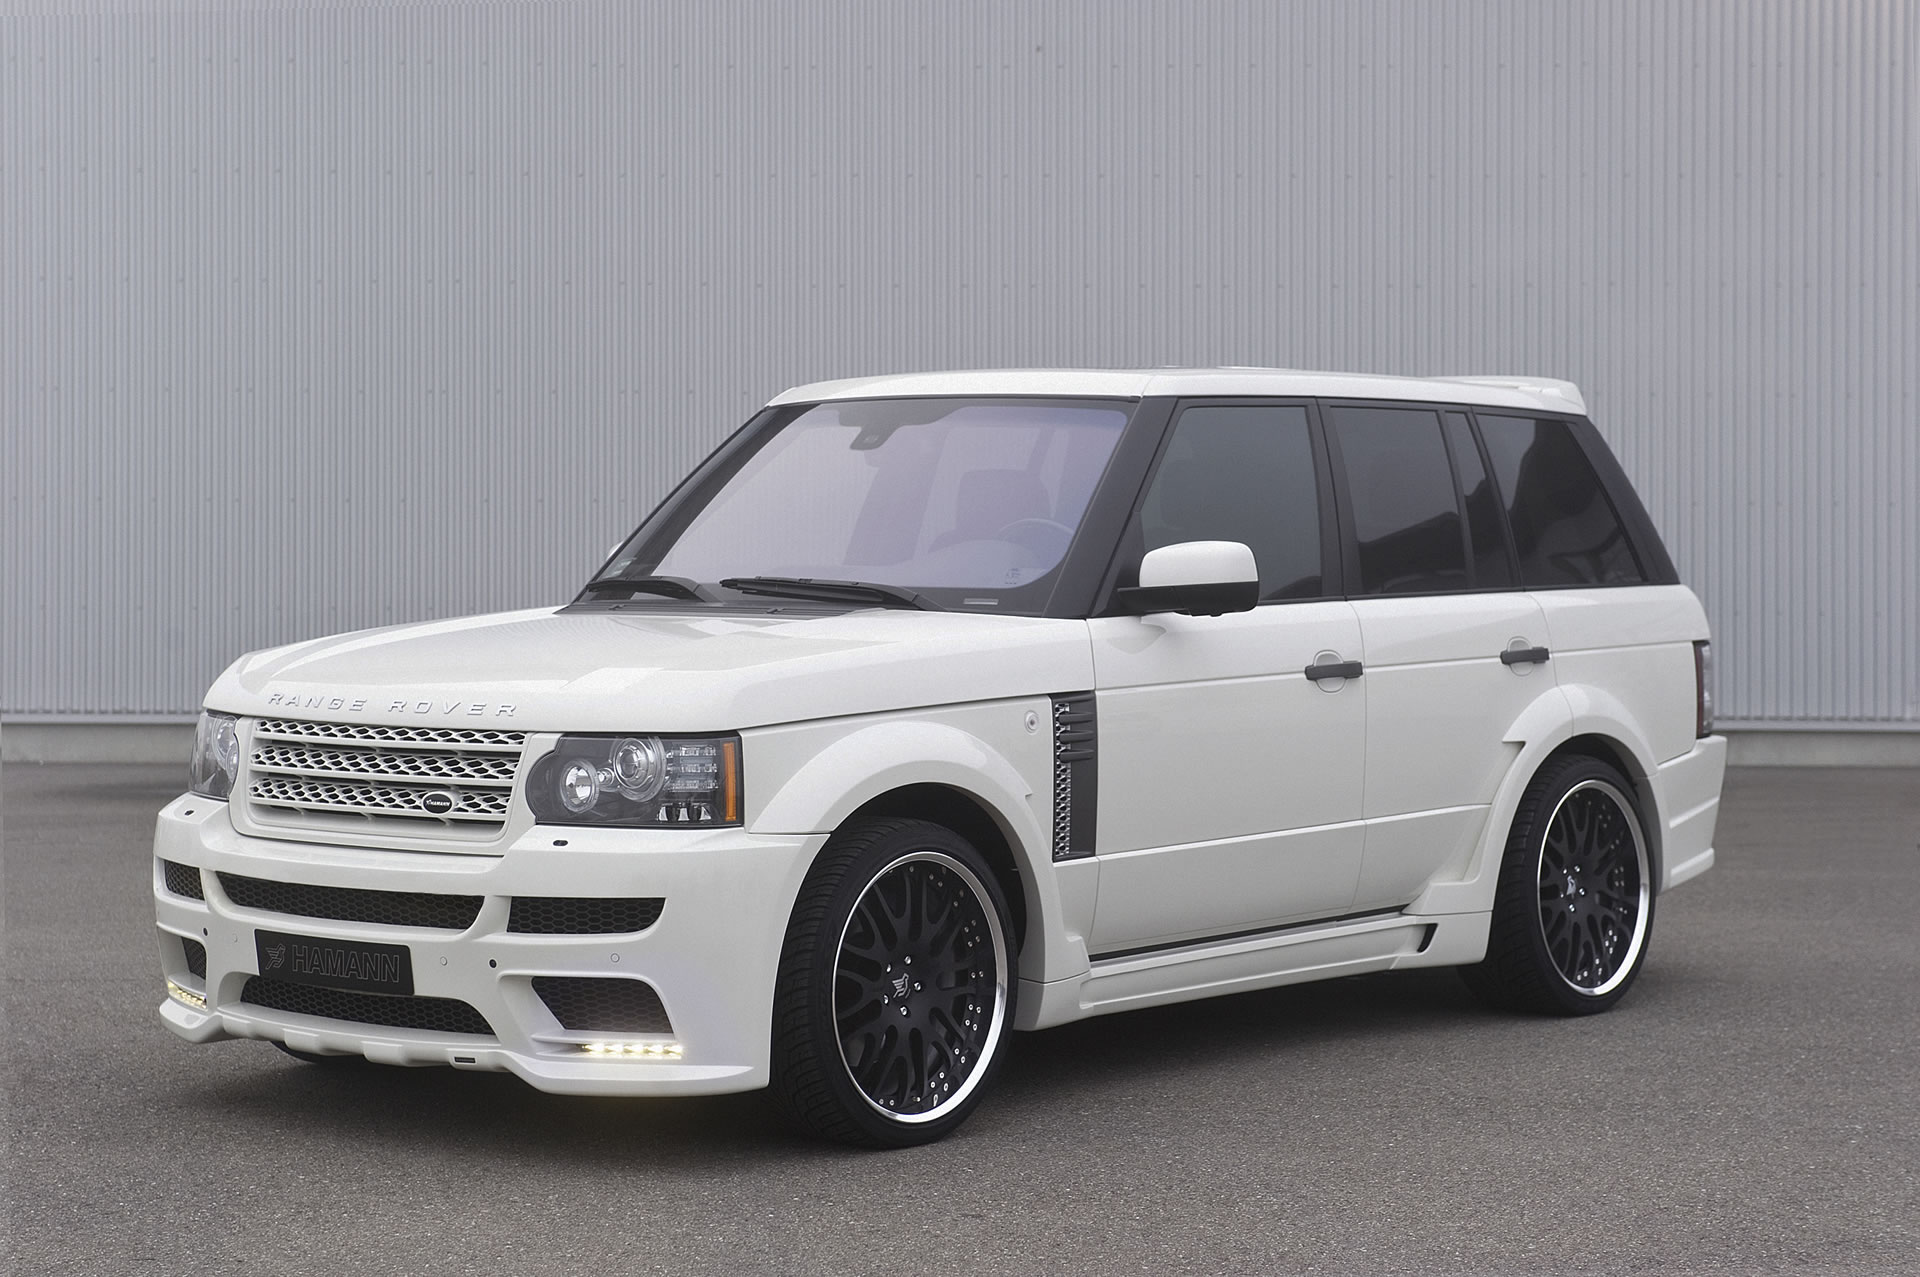 hamann range rover v8 supercharged. Black Bedroom Furniture Sets. Home Design Ideas